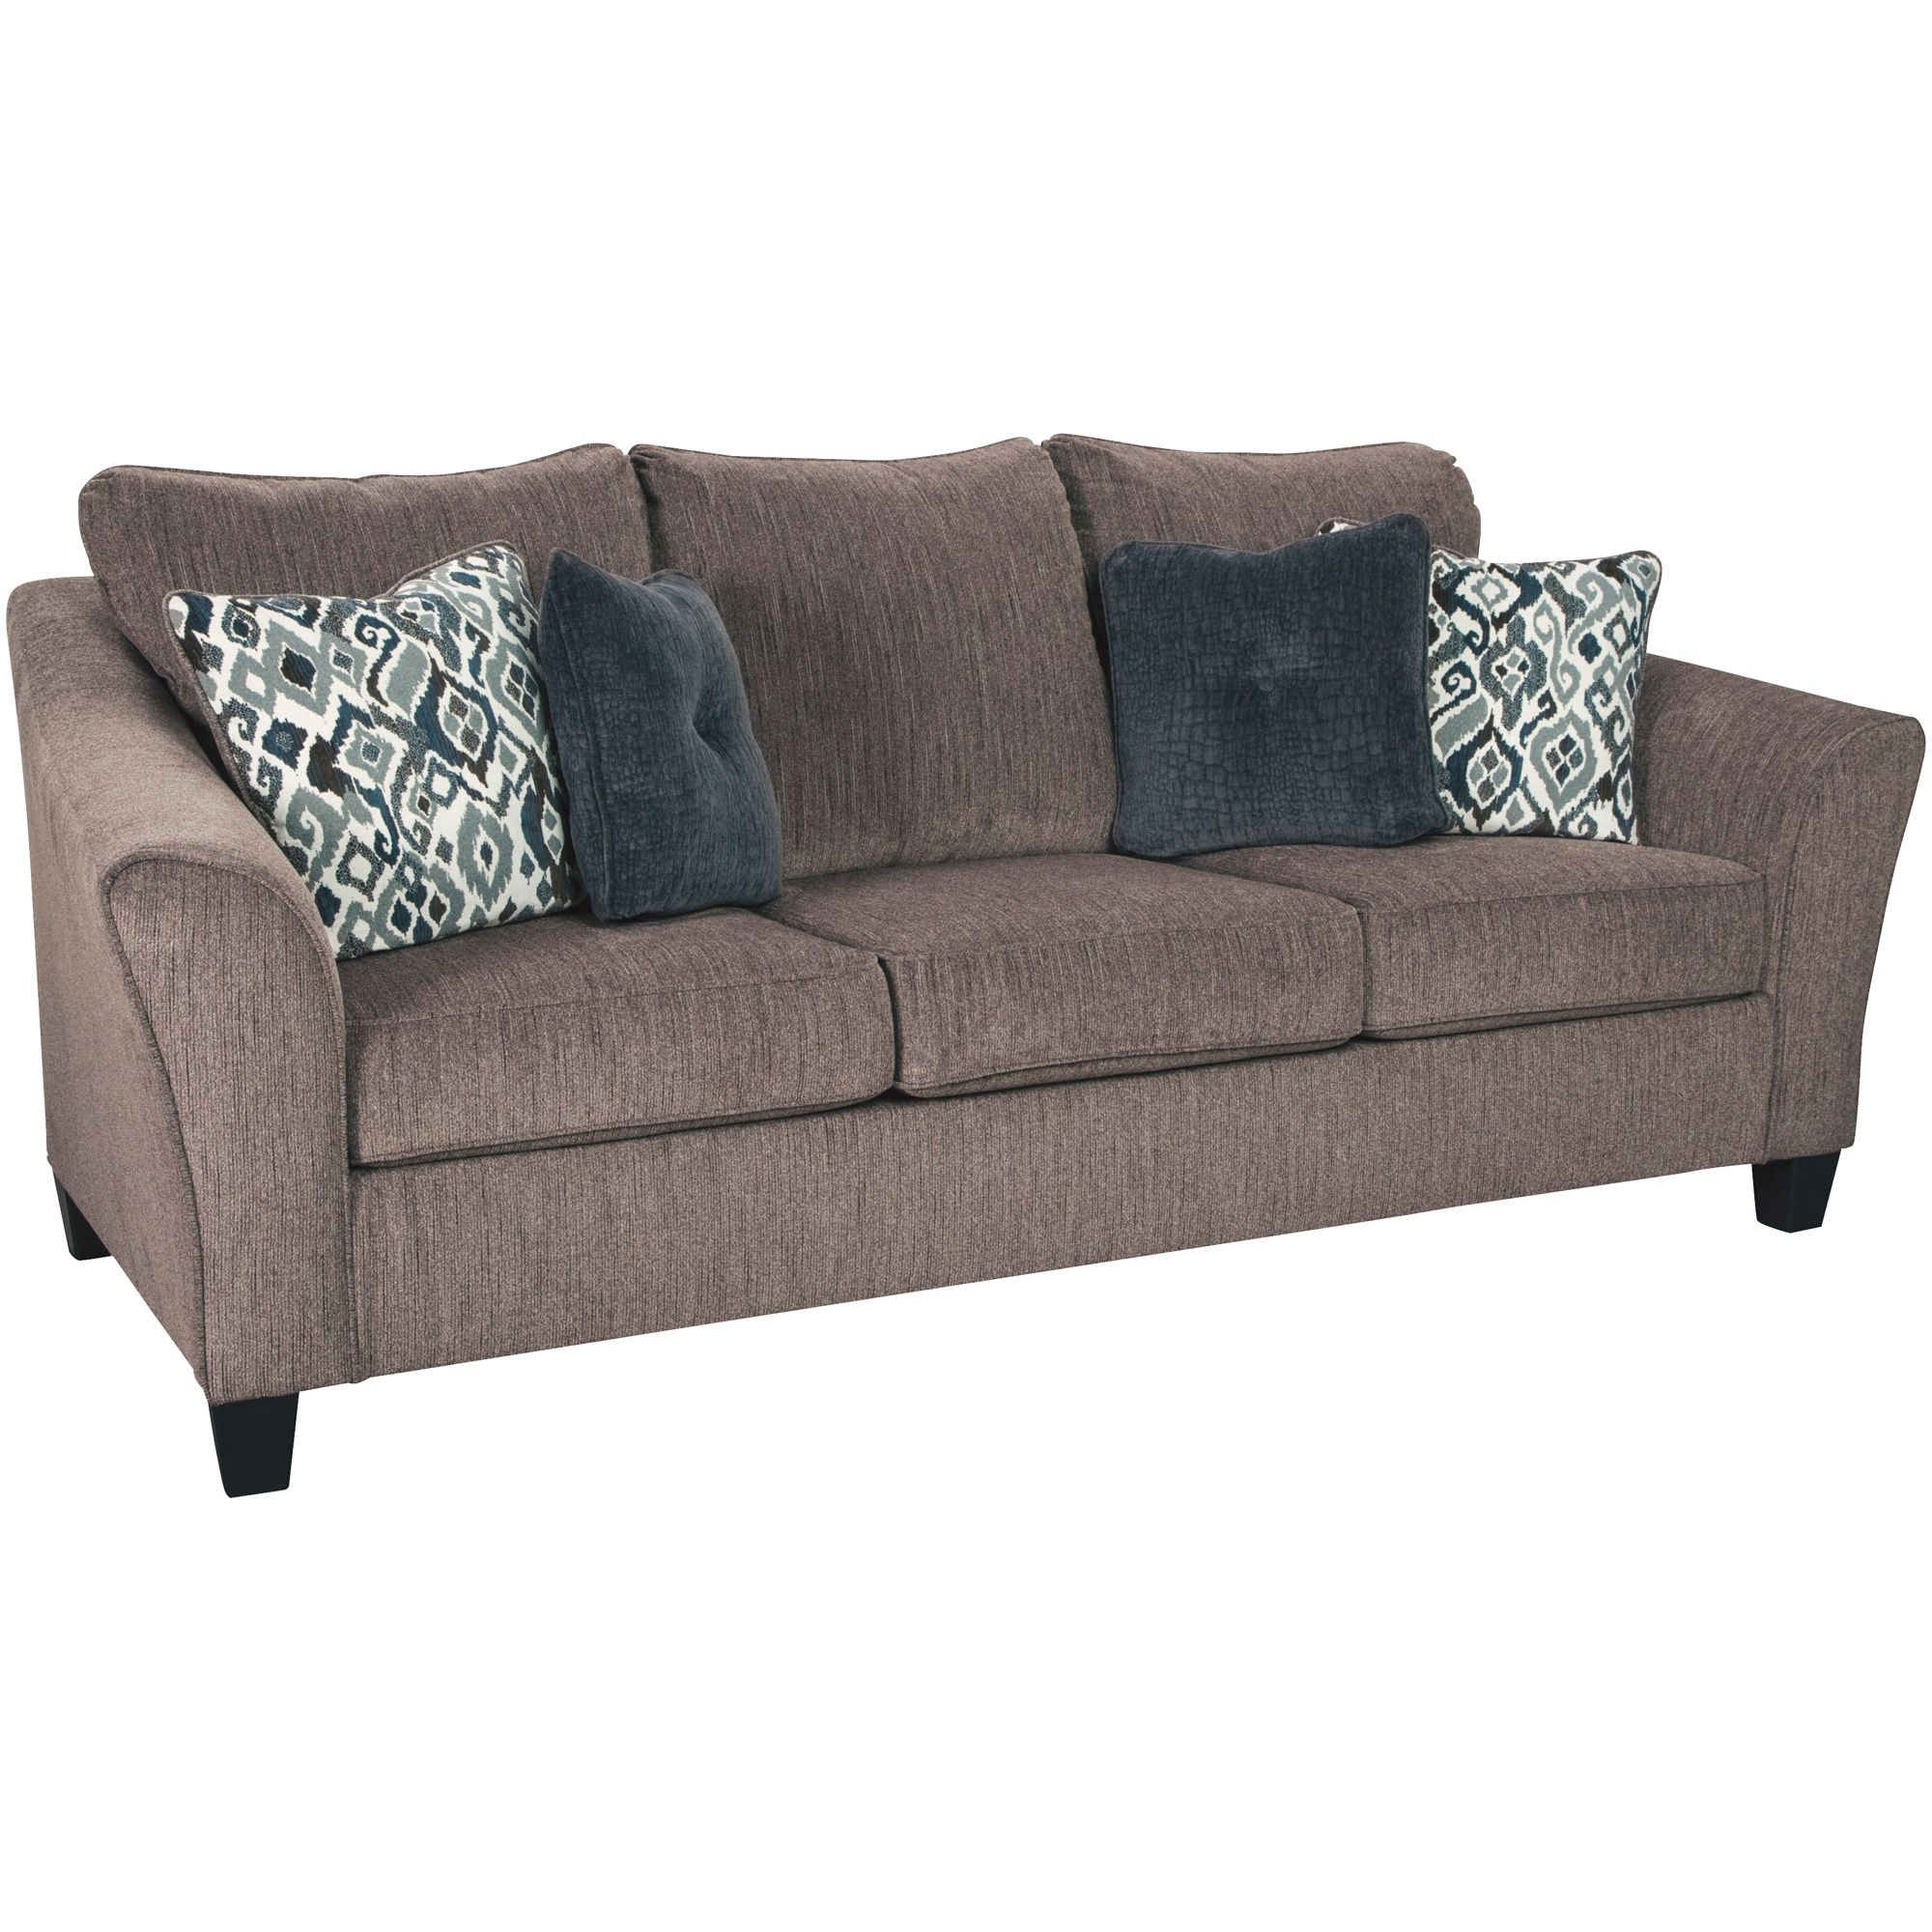 Ashley Furniture Nemoli Slate Queen Sleeper Sofa In 2021 Queen Sofa Sleeper Slate Sofa Sofa Ashley furniture pull out couch